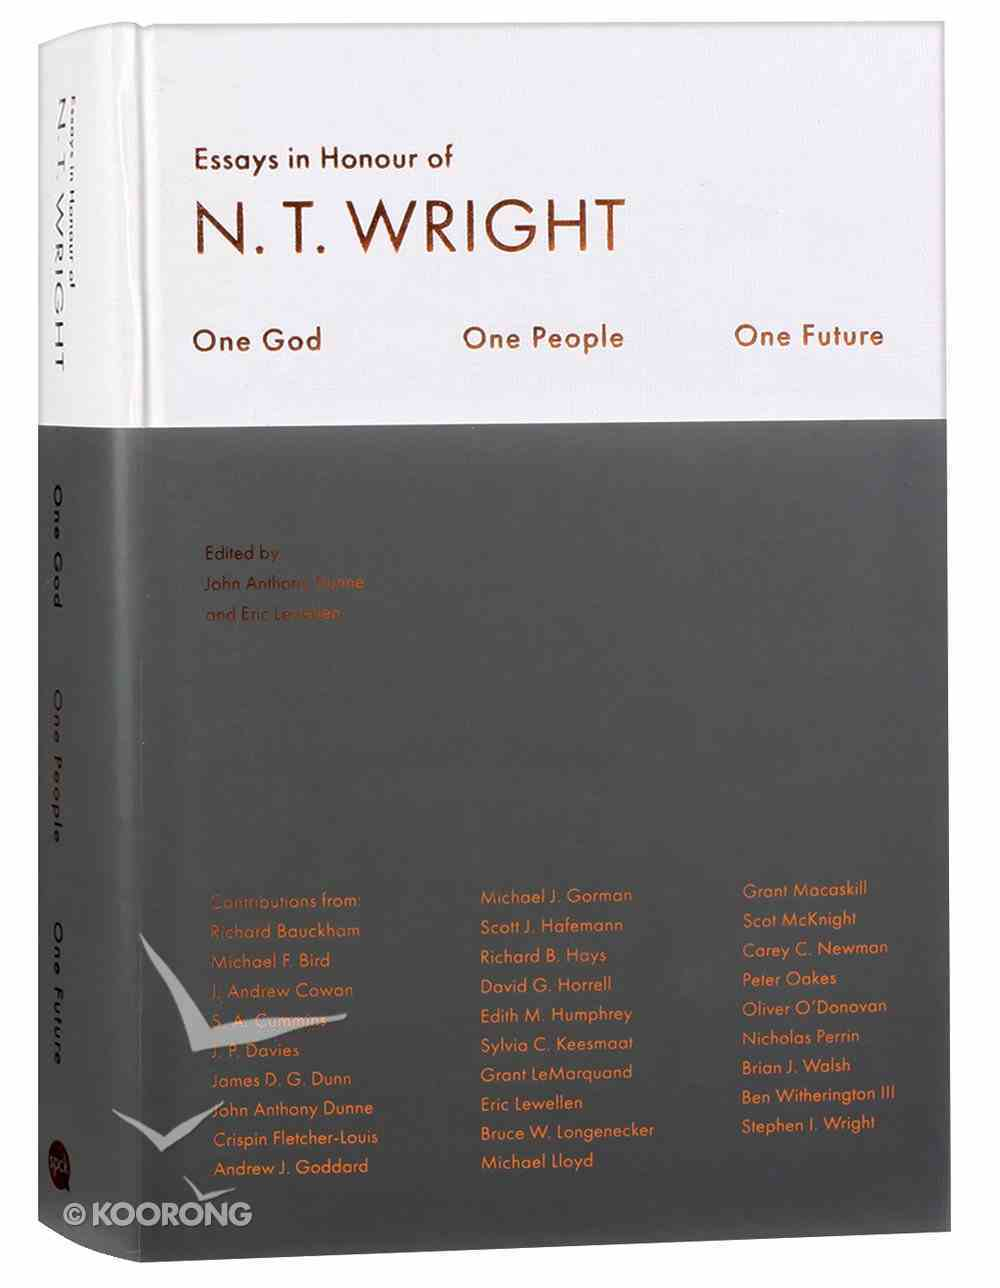 One God, One People, One Future: Essays in Honour of N T Wright Hardback